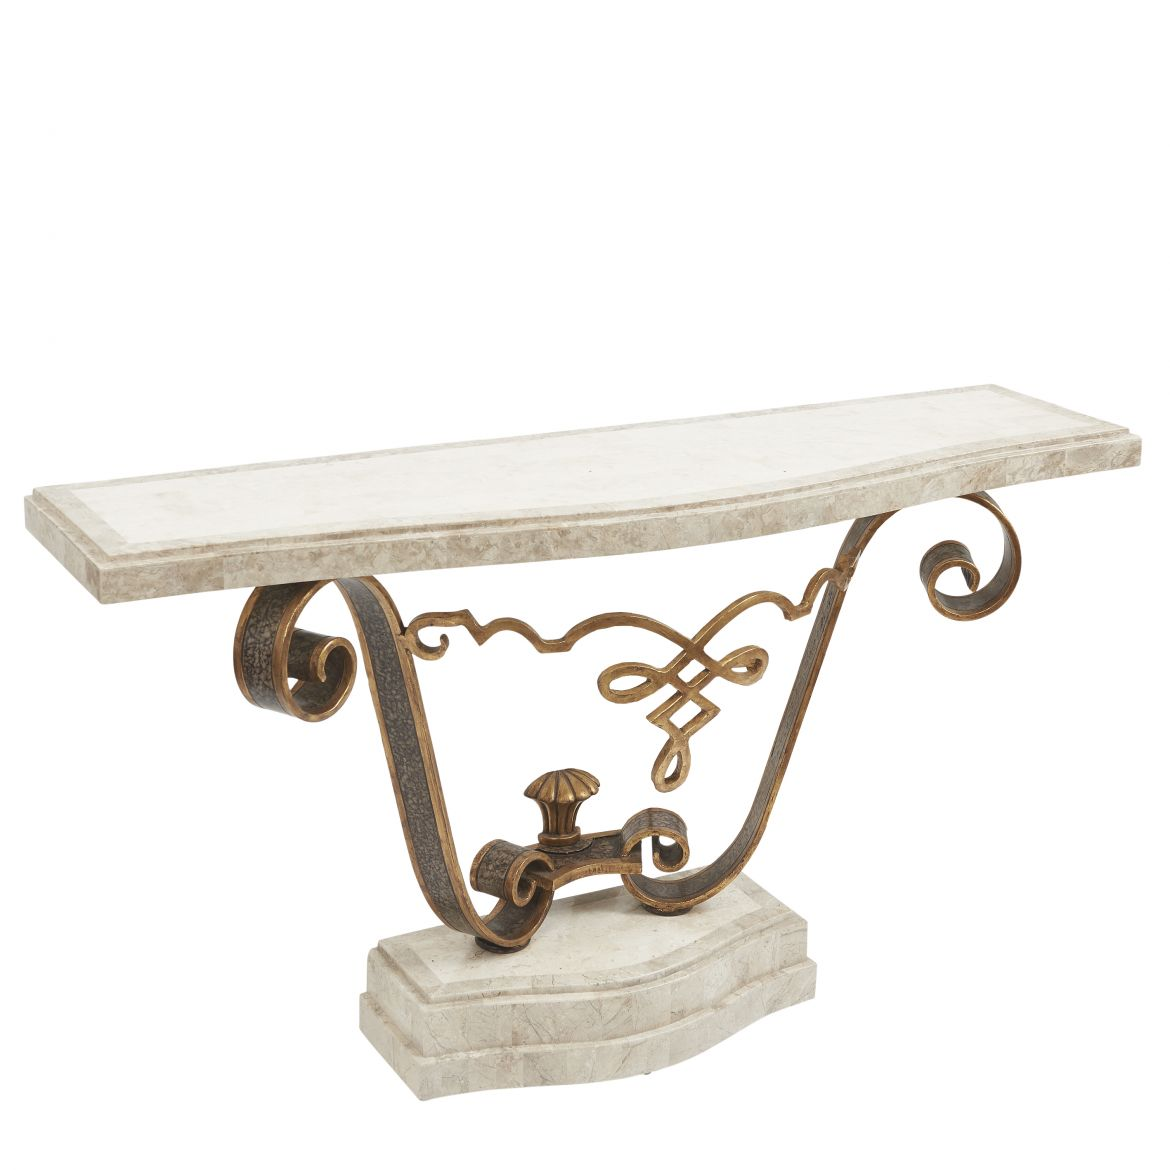 Fournier Wrought Iron And Tesselated Marble Console Table